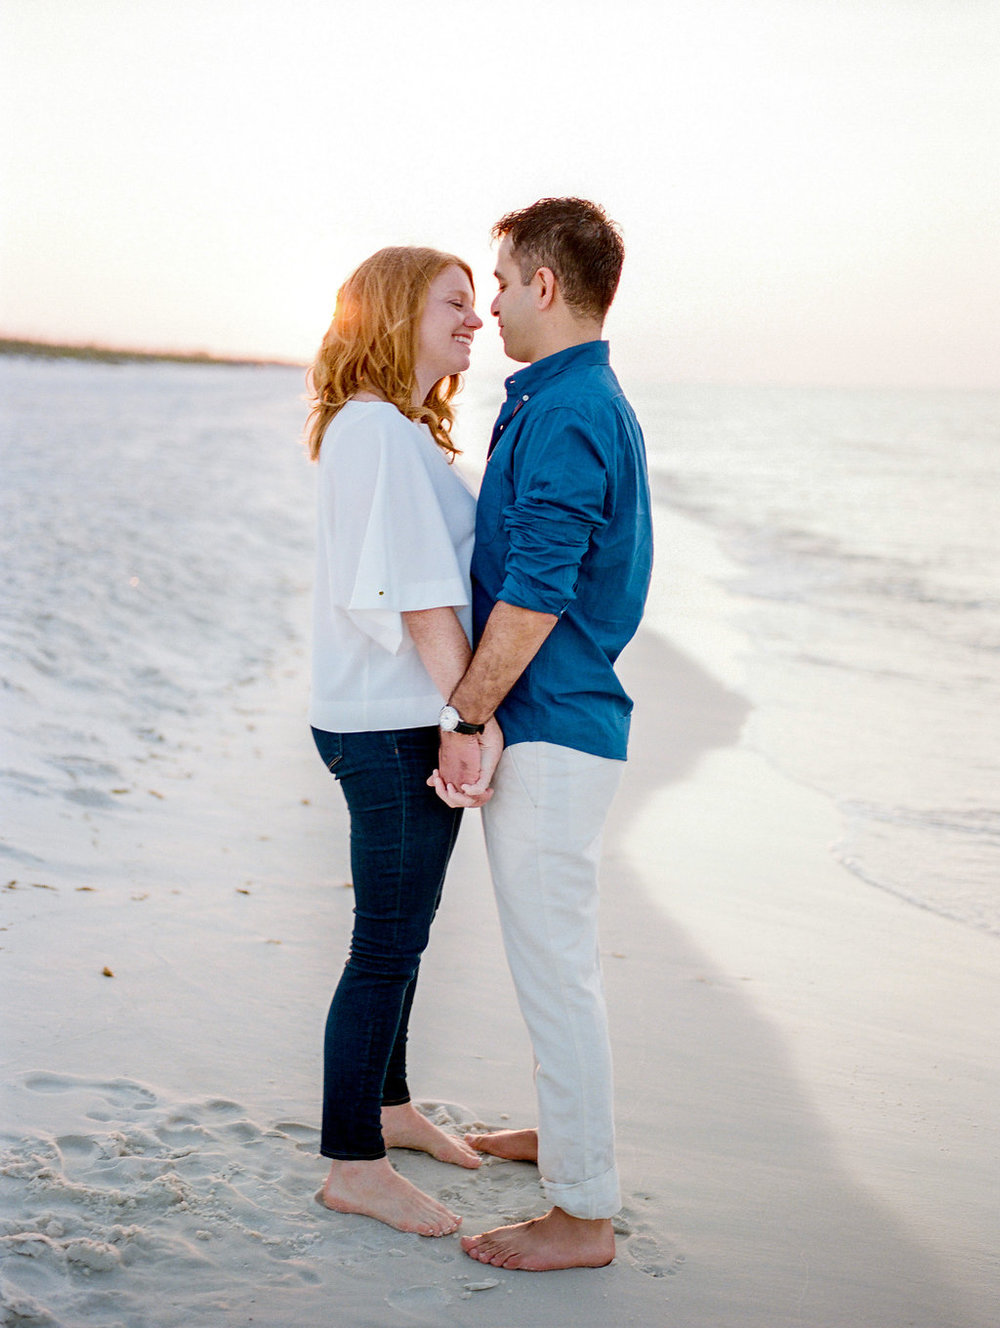 pensacola beach florida engagement photos destination wedding photographer lissa ryan photography